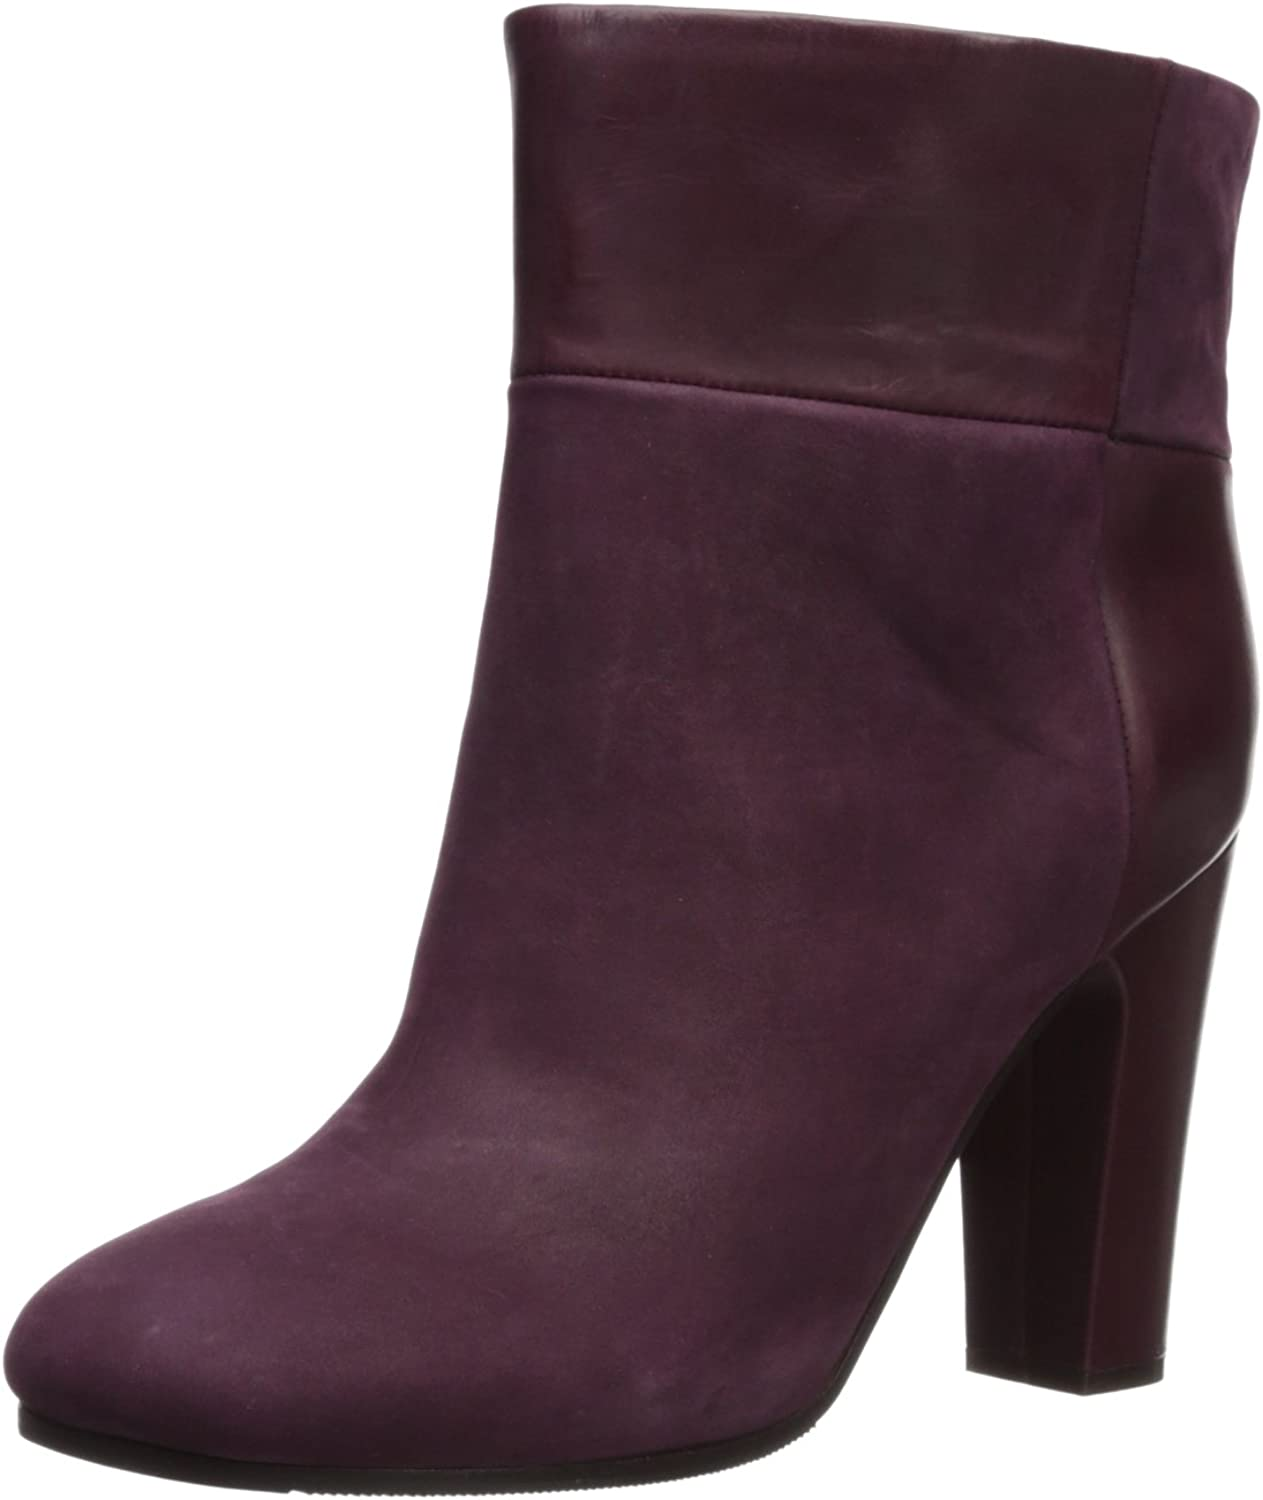 SEE BY CHLOé Women's Patched Bootie